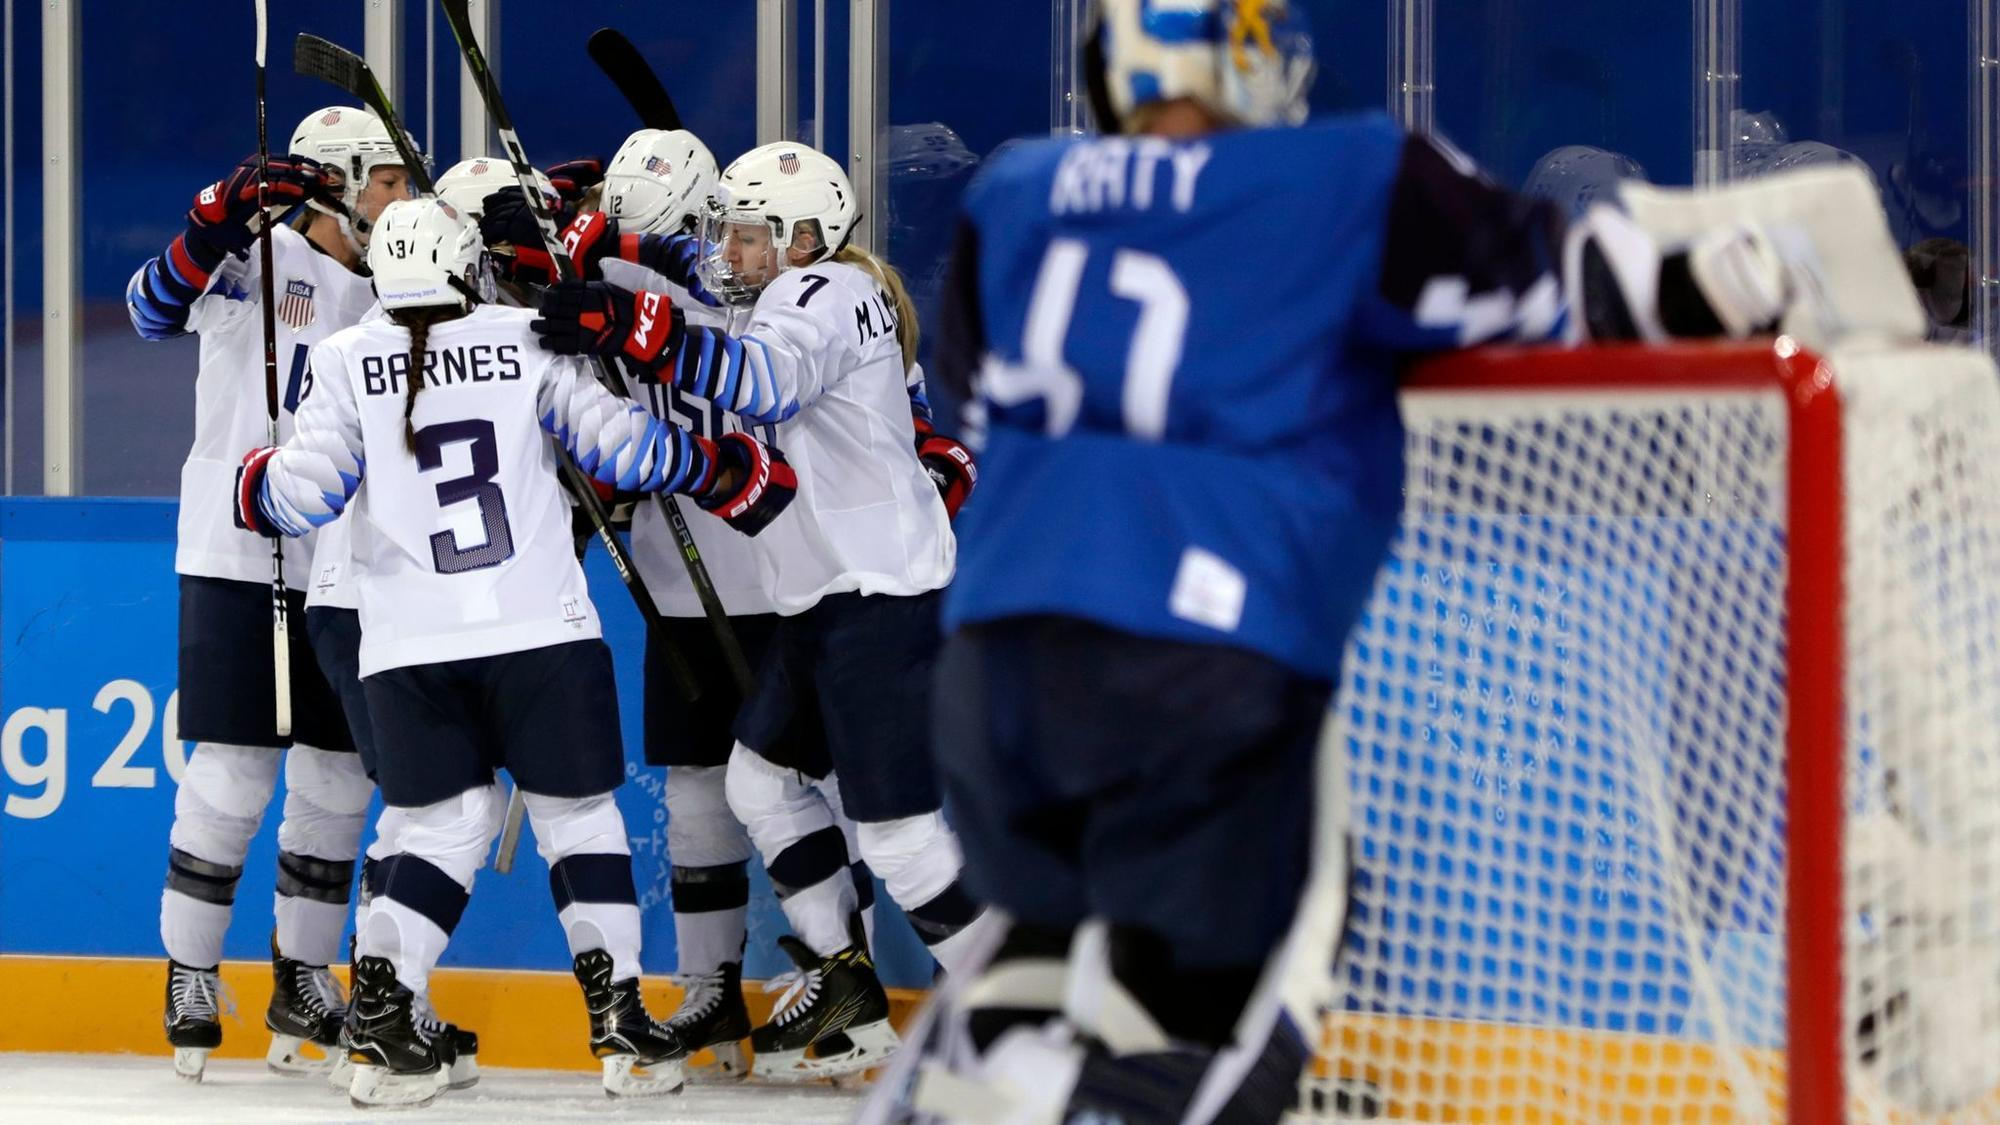 Palos Heights' Kendall Coyne scores go-ahead goal to lift U.S. over Finland in women's hockey